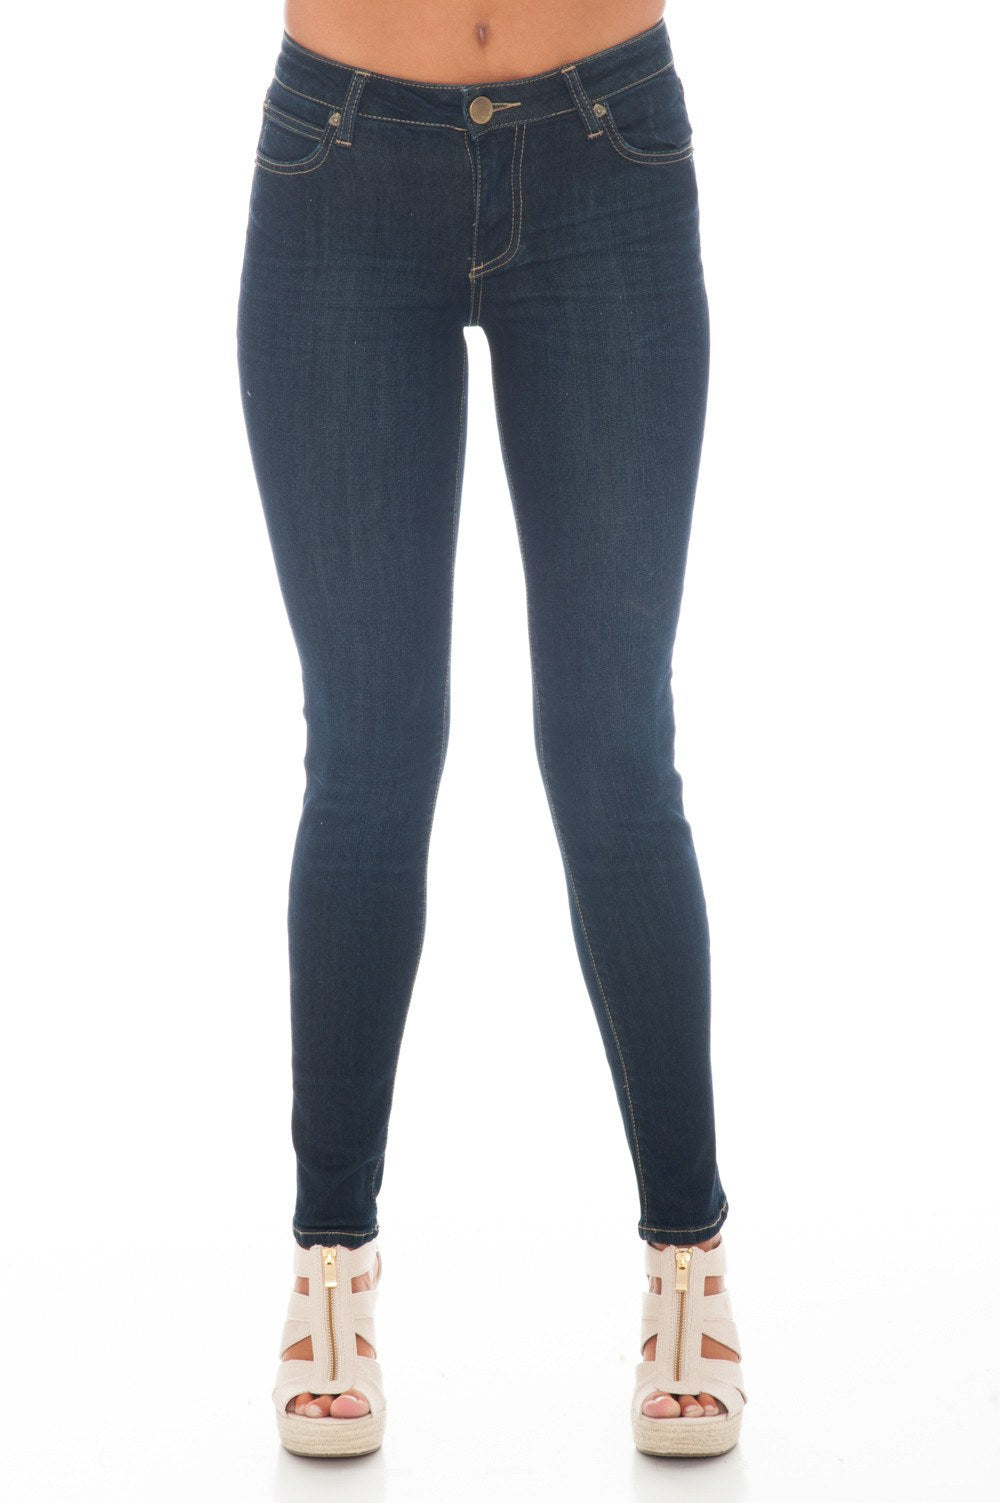 Jean - Diana Limitless Kurvy Skinny by Kut From the Kloth - 1